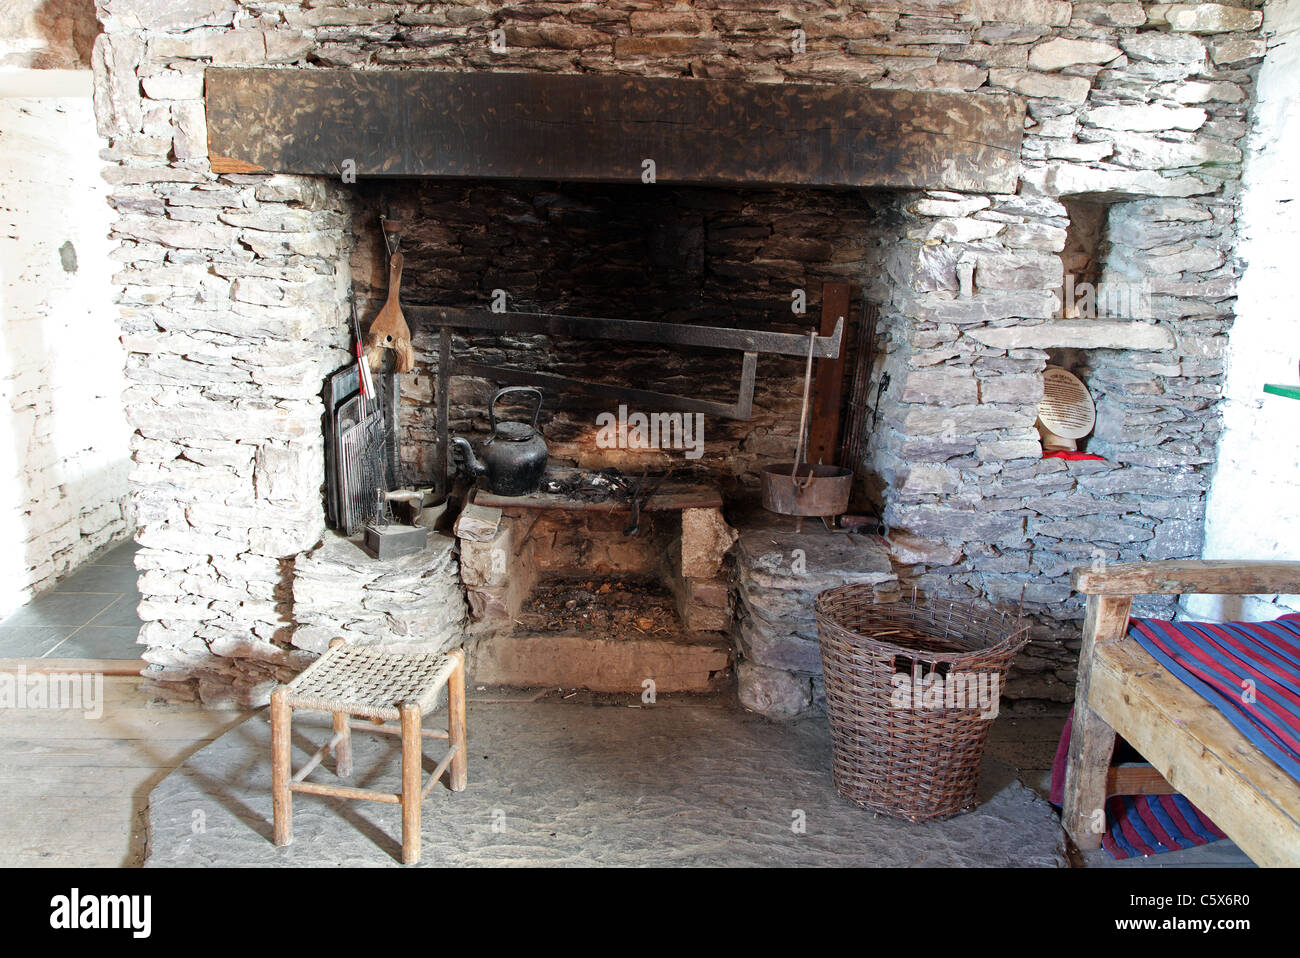 Old Fashioned Outdoor Fireplace